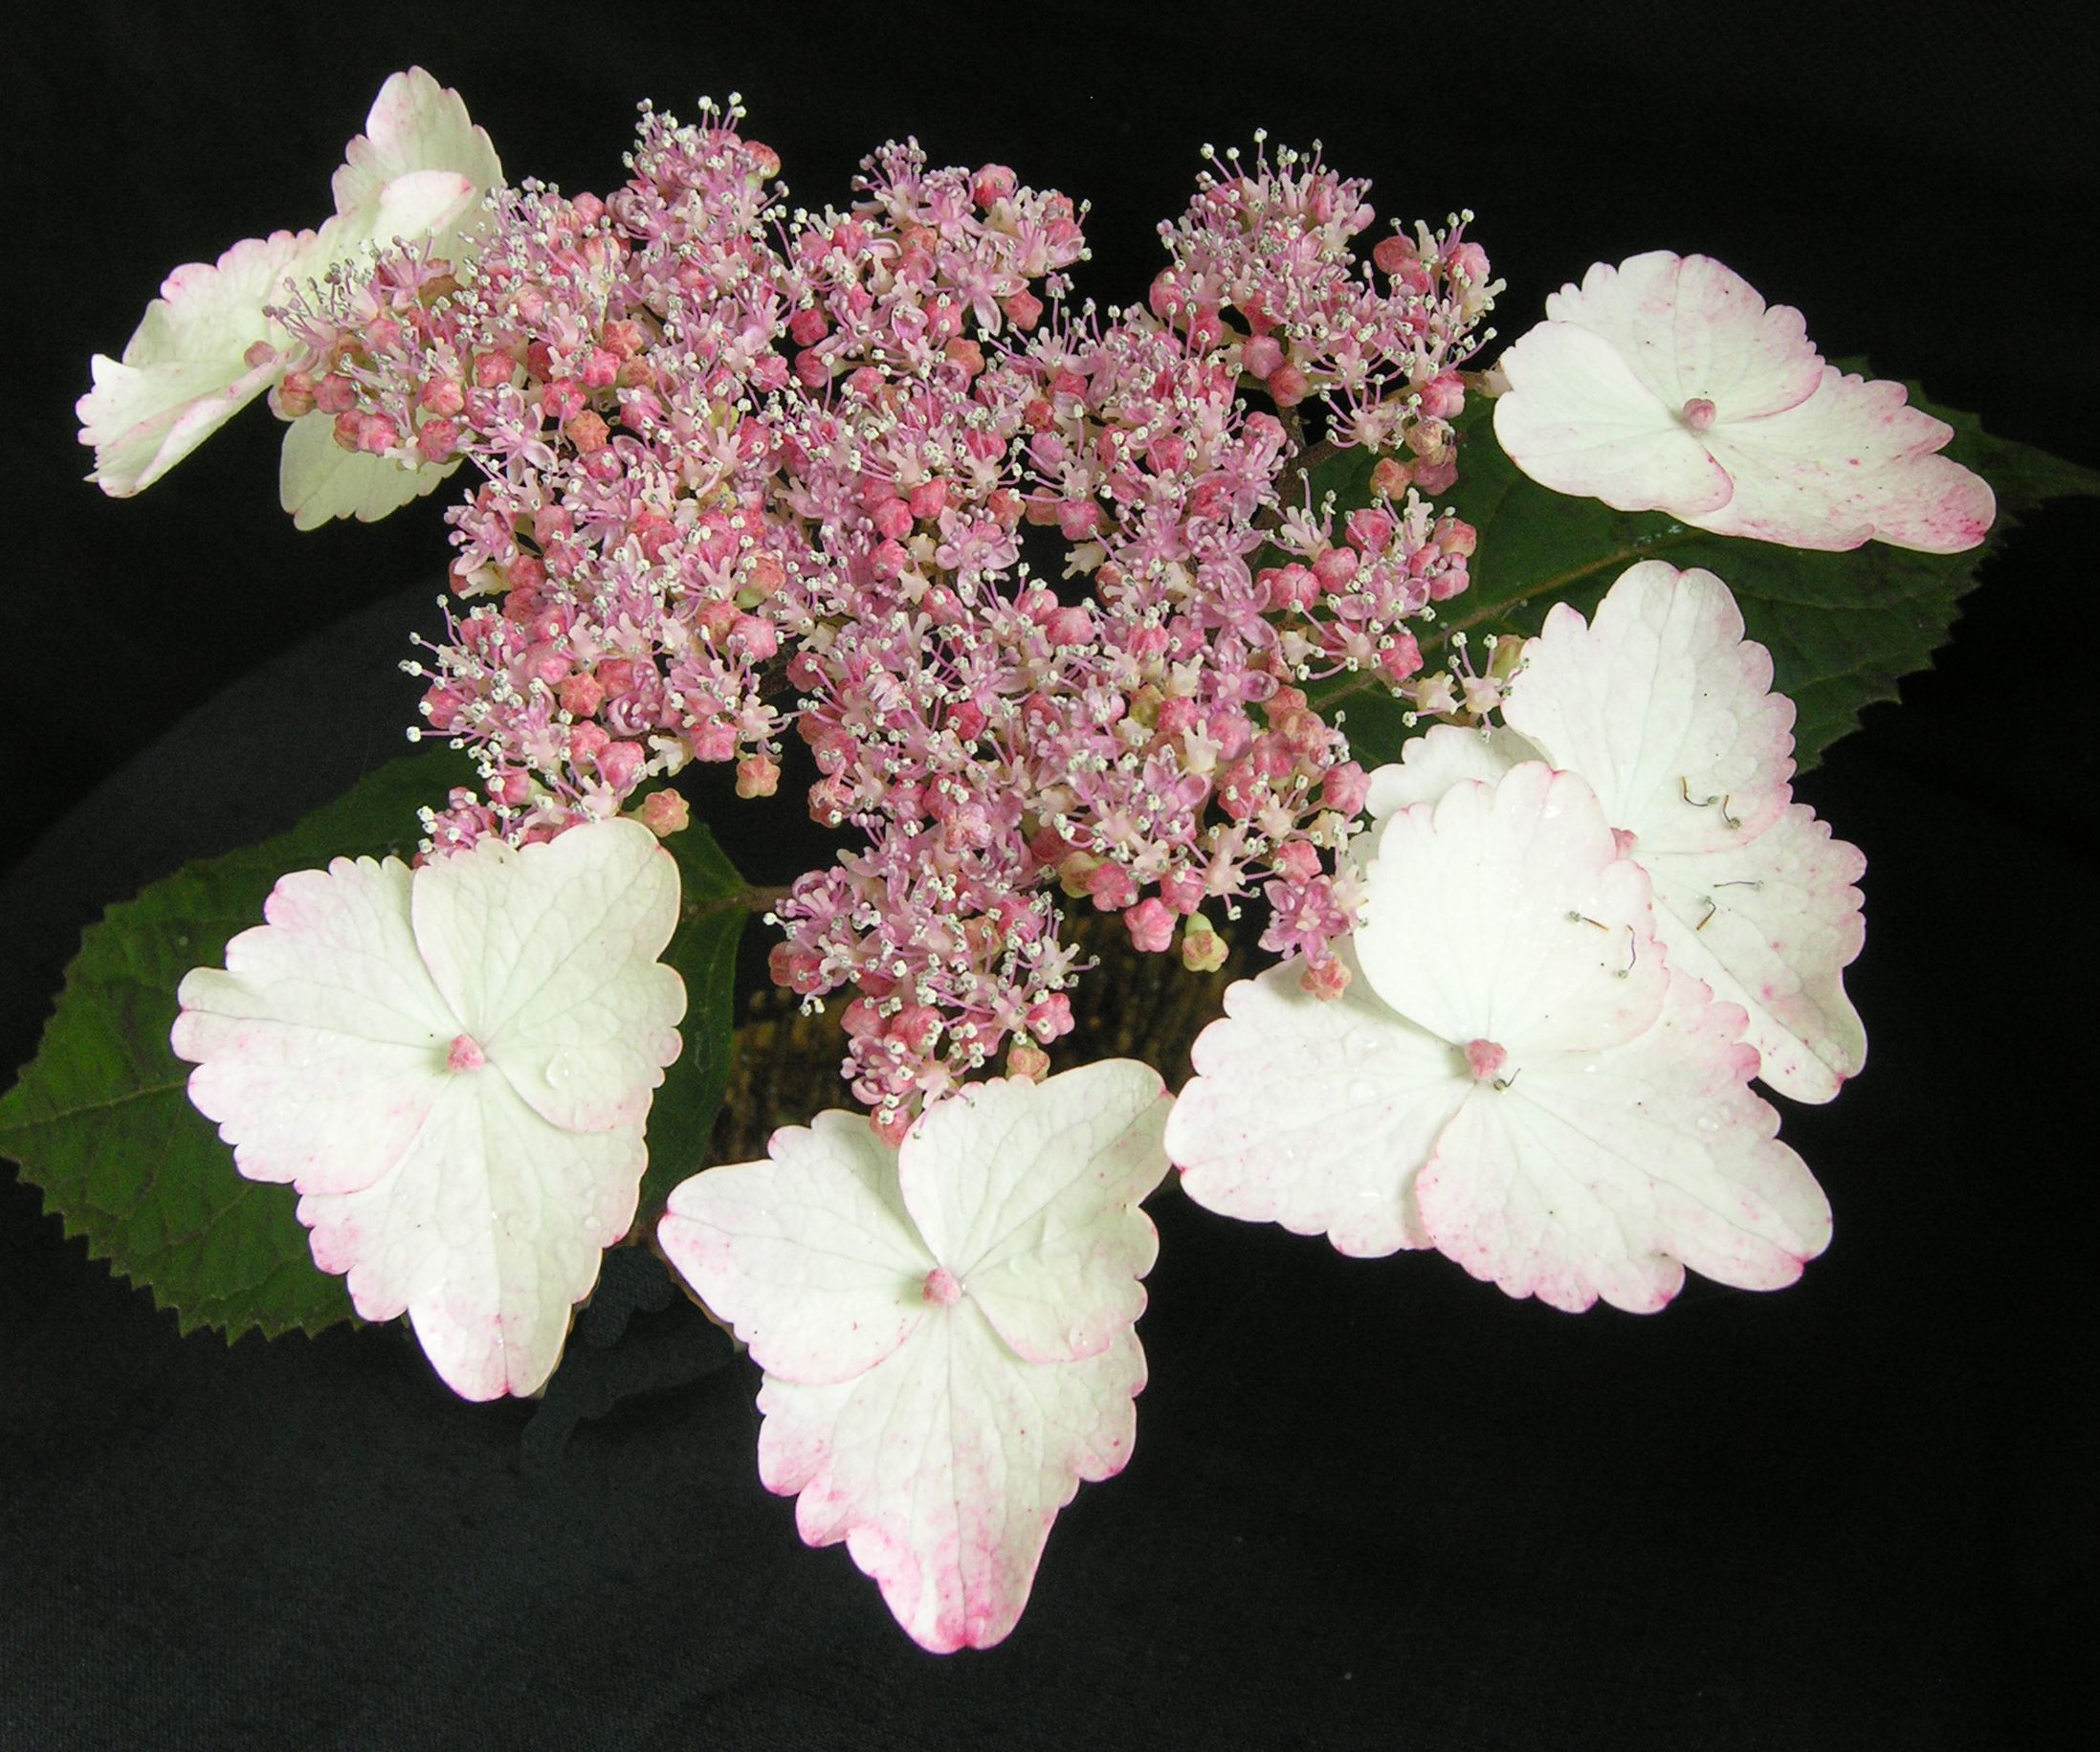 Hydrangea serrata 'Beni-gaku'.  A beautiful lacecap hydrangea with lilac fertile flowers surrounded by white ray florets which turn red in sunlight. A Great Plant Picks selection.